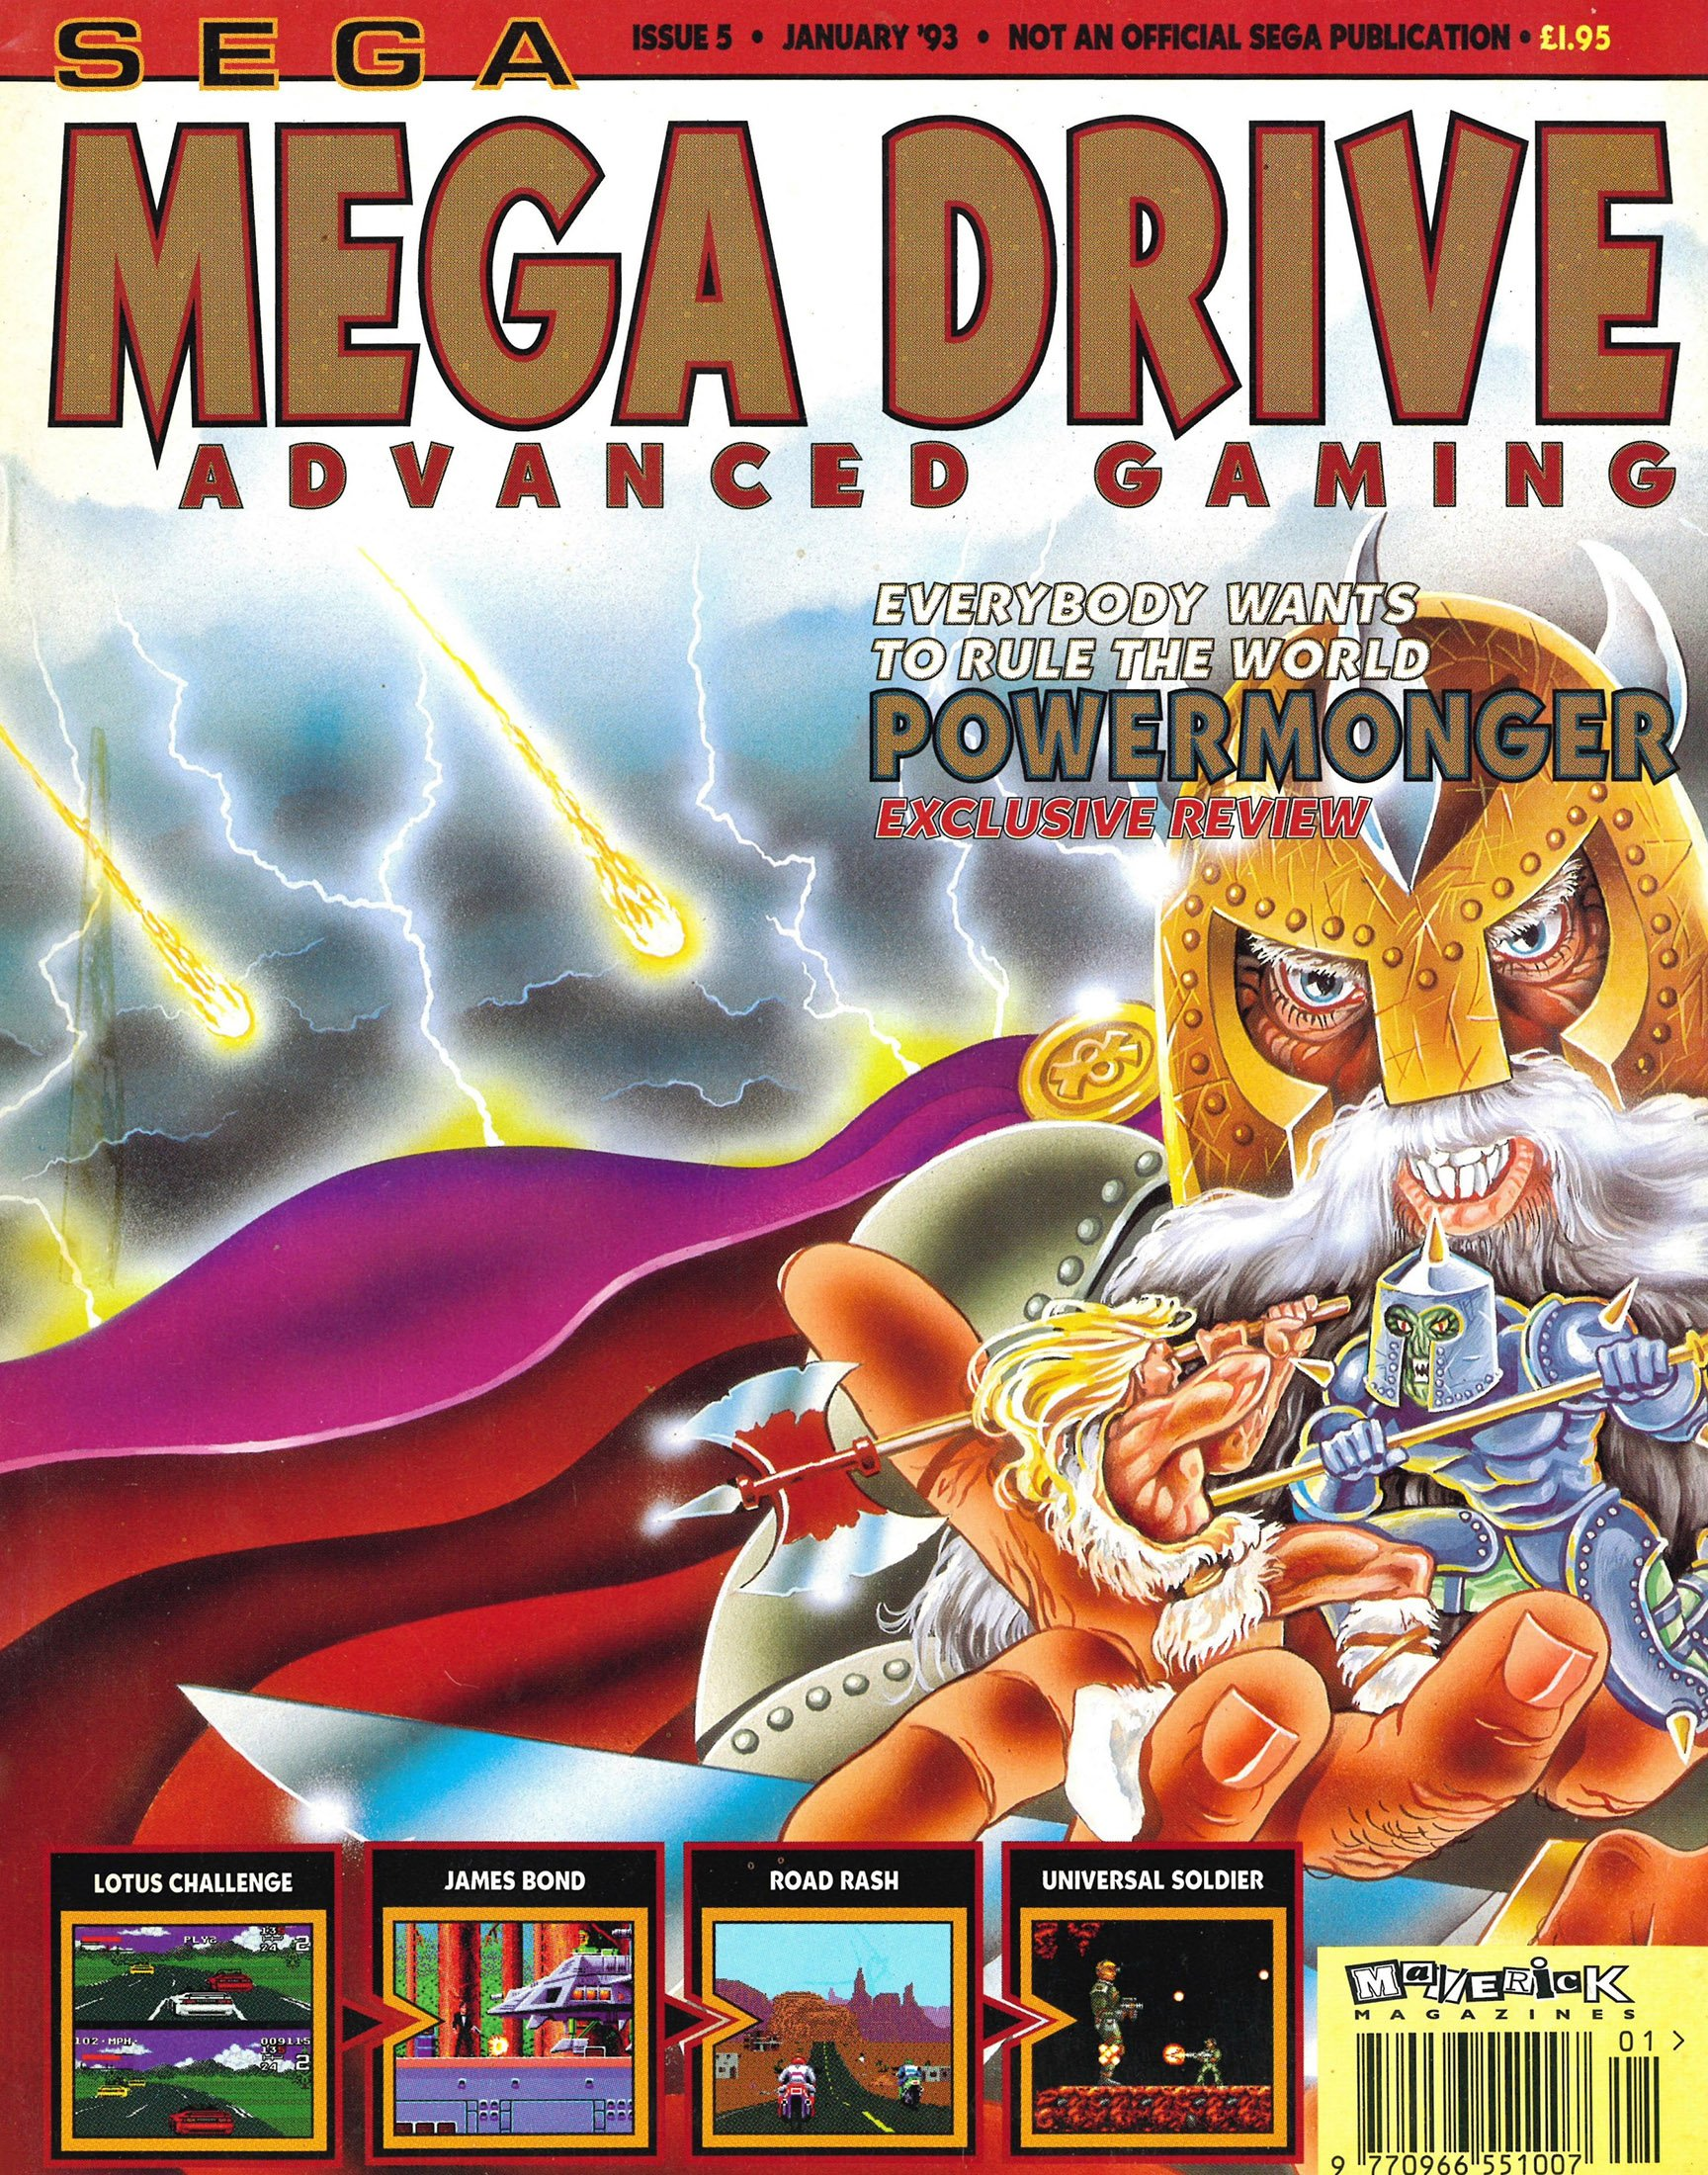 Mega Drive Advanced Gaming 05 (January 1993)